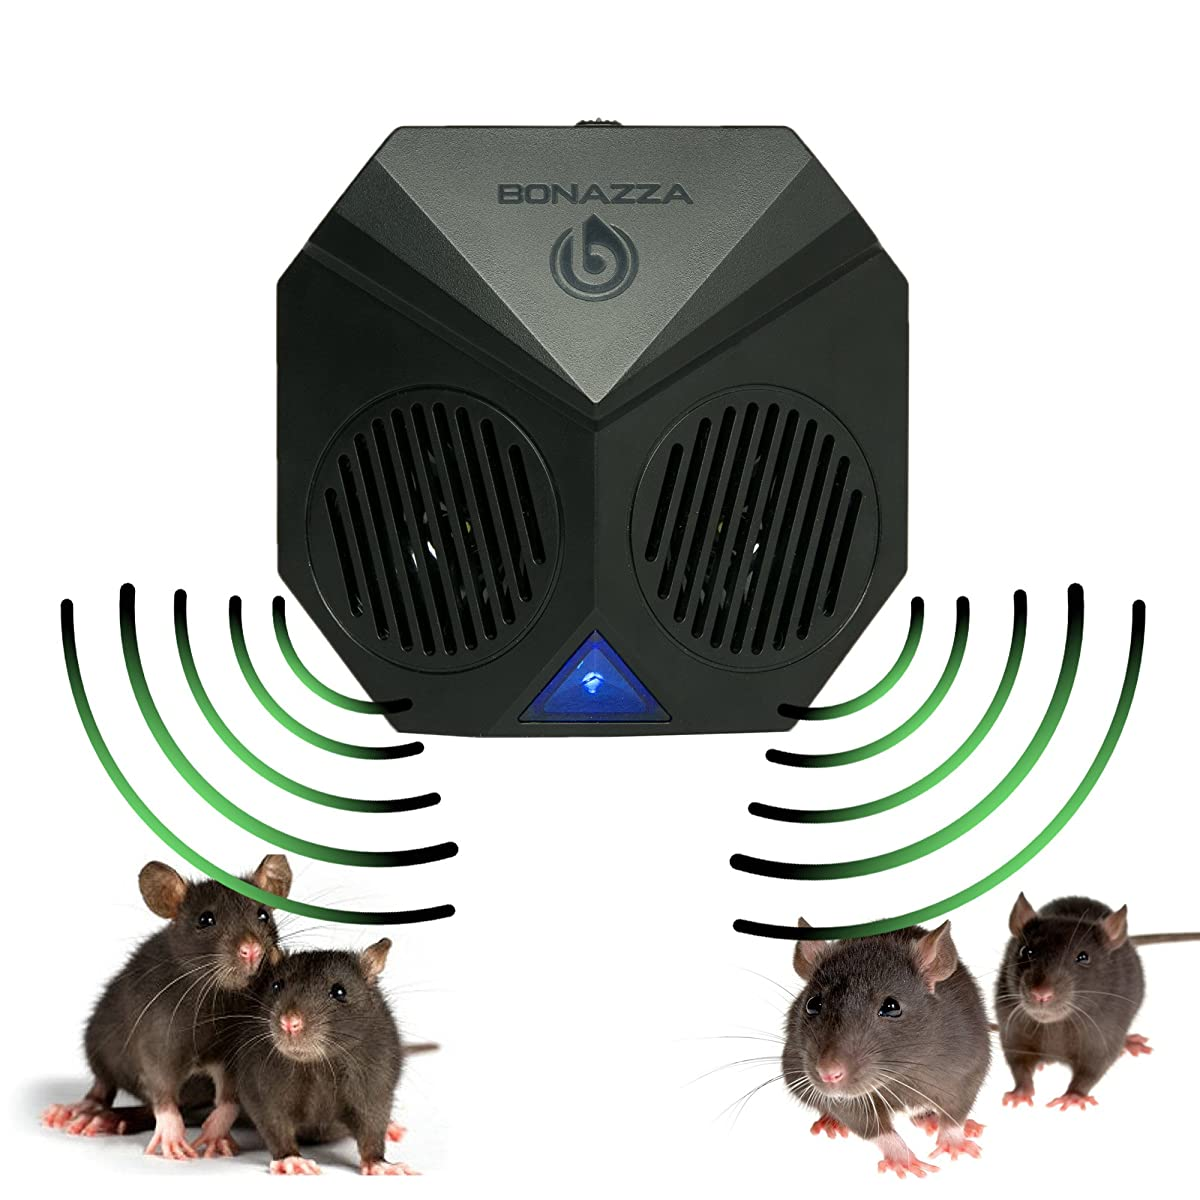 BONAZZA Rodent Repellent Ultrasonic for Garages, Warehouse, Attics, Basements - Best Electronic Mouse Repeller Get Rid Of Bugs Insects and Mice, Mouse and Rat 3 Modes of Pest Control - 2 Pack